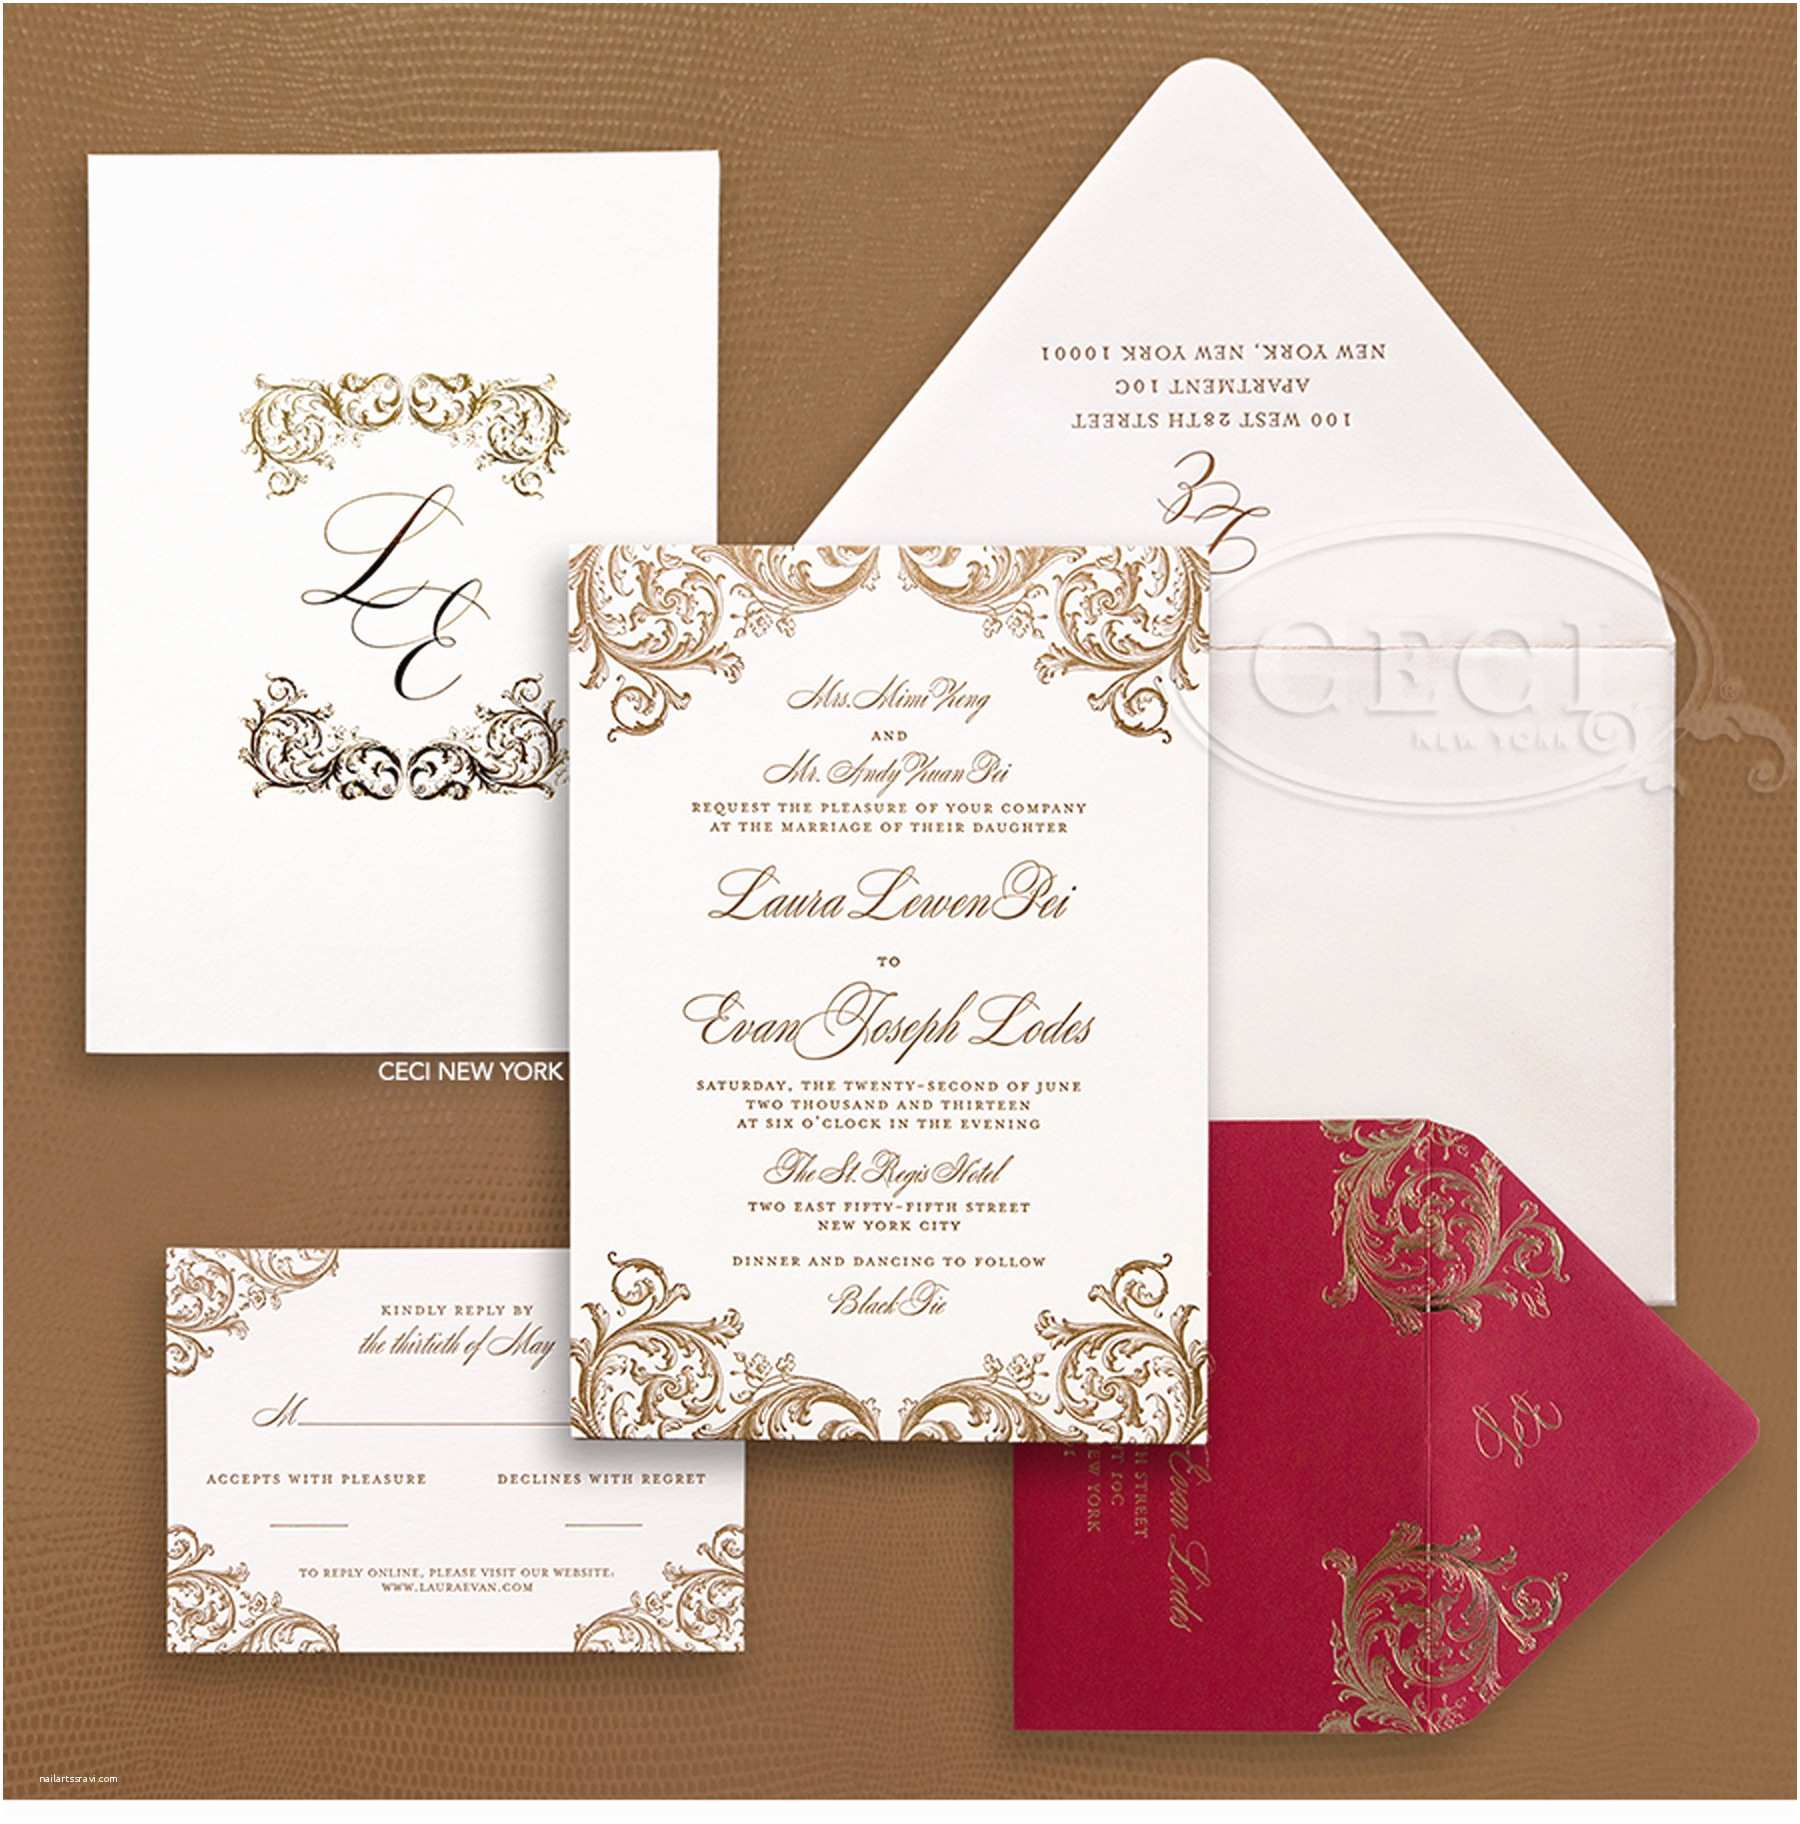 New Wedding Invitations Red and Gold Wedding Invitations Red and Gold Wedding